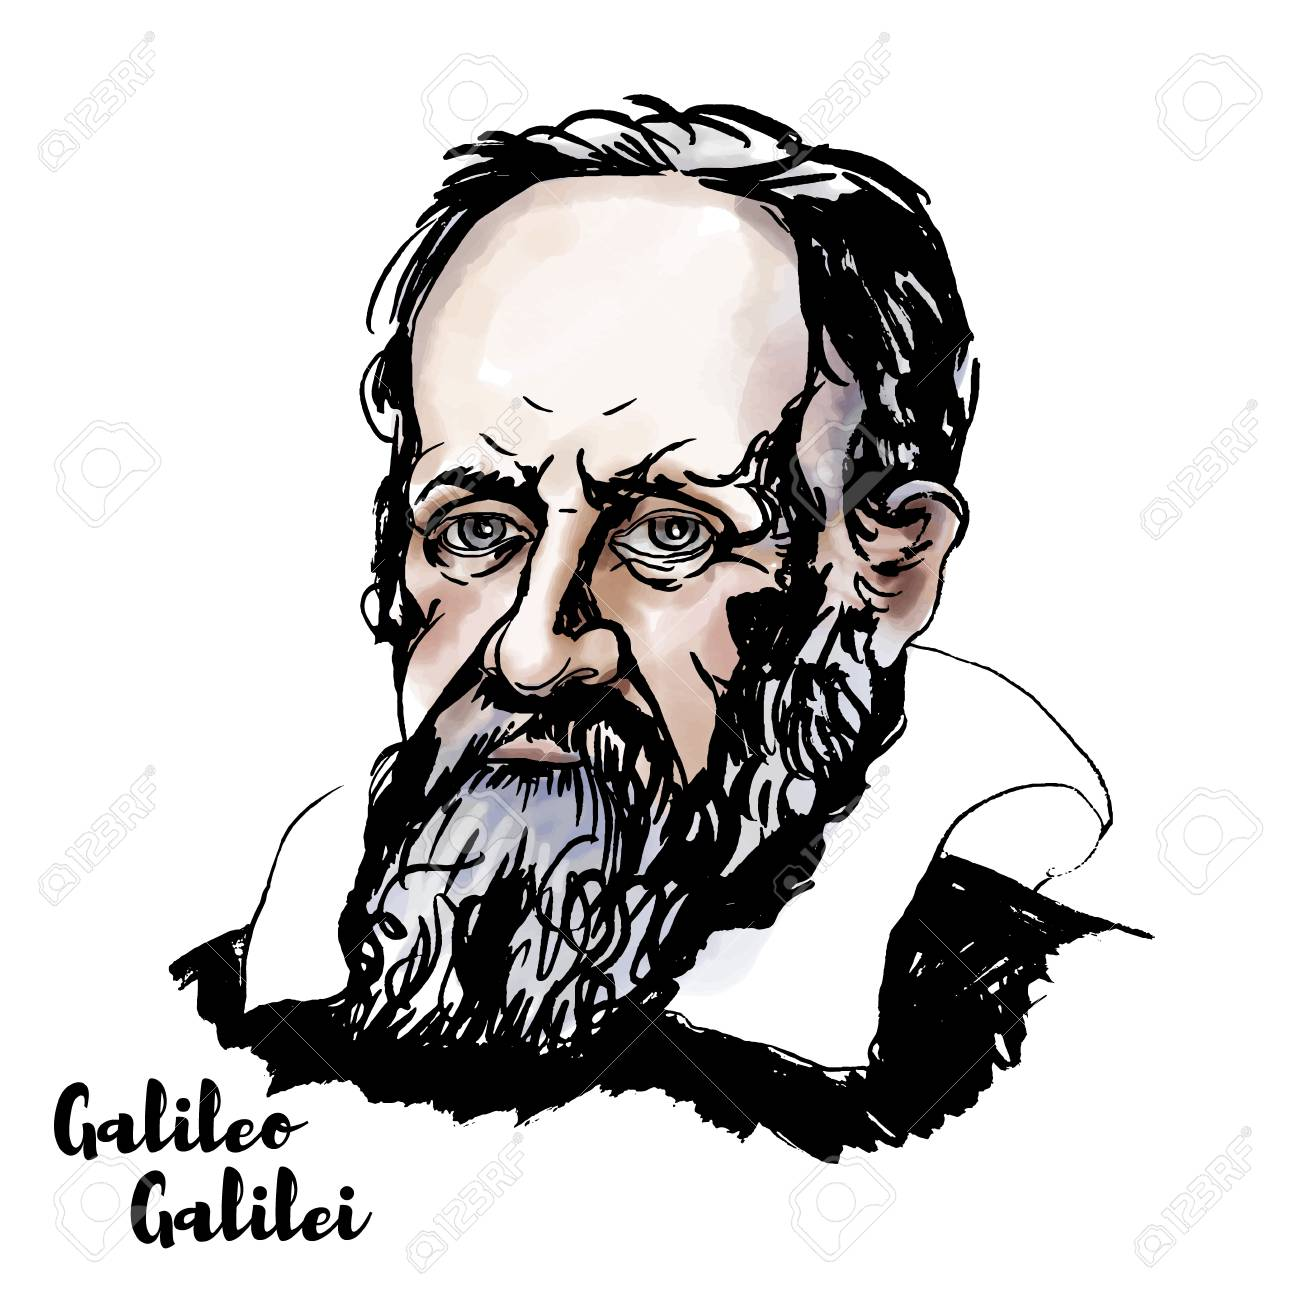 Galileo Galilei watercolor vector portrait with ink contours. The Italian polymath. - 110435006